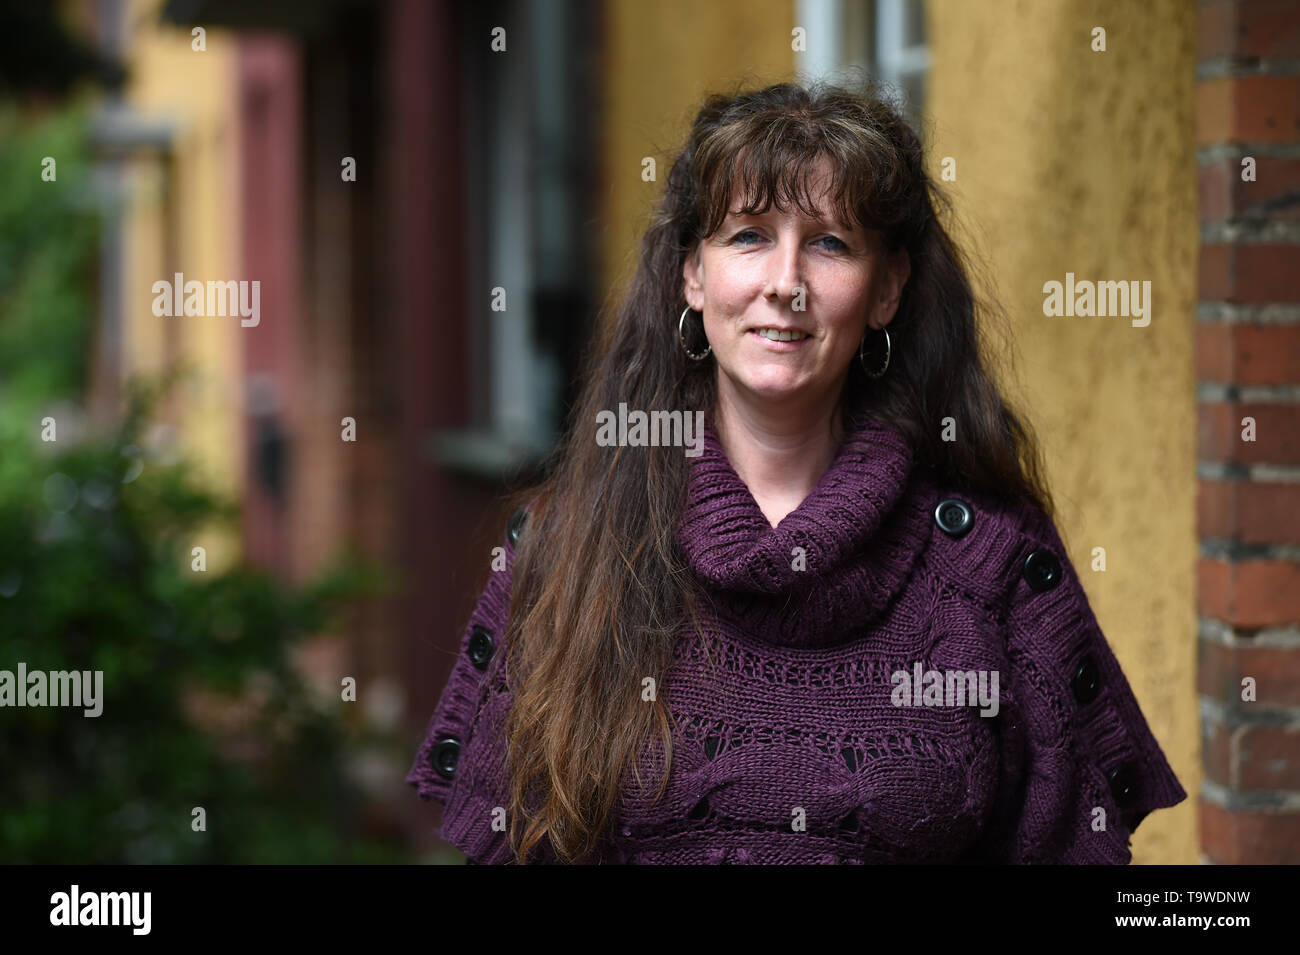 """Berlin, Germany. 17th May, 2019. Viviane Czernietzki in front of the entrance of her terraced house in Berlin-Britz. The network nebenan.de has more than one million users in Germany, connects neighbors with each other and invites on May 24 to the day of the neighbors. (to """"Online platform provides for offline contacts among neighbors"""") Credit: Sven Braun/dpa/Alamy Live News Stock Photo"""